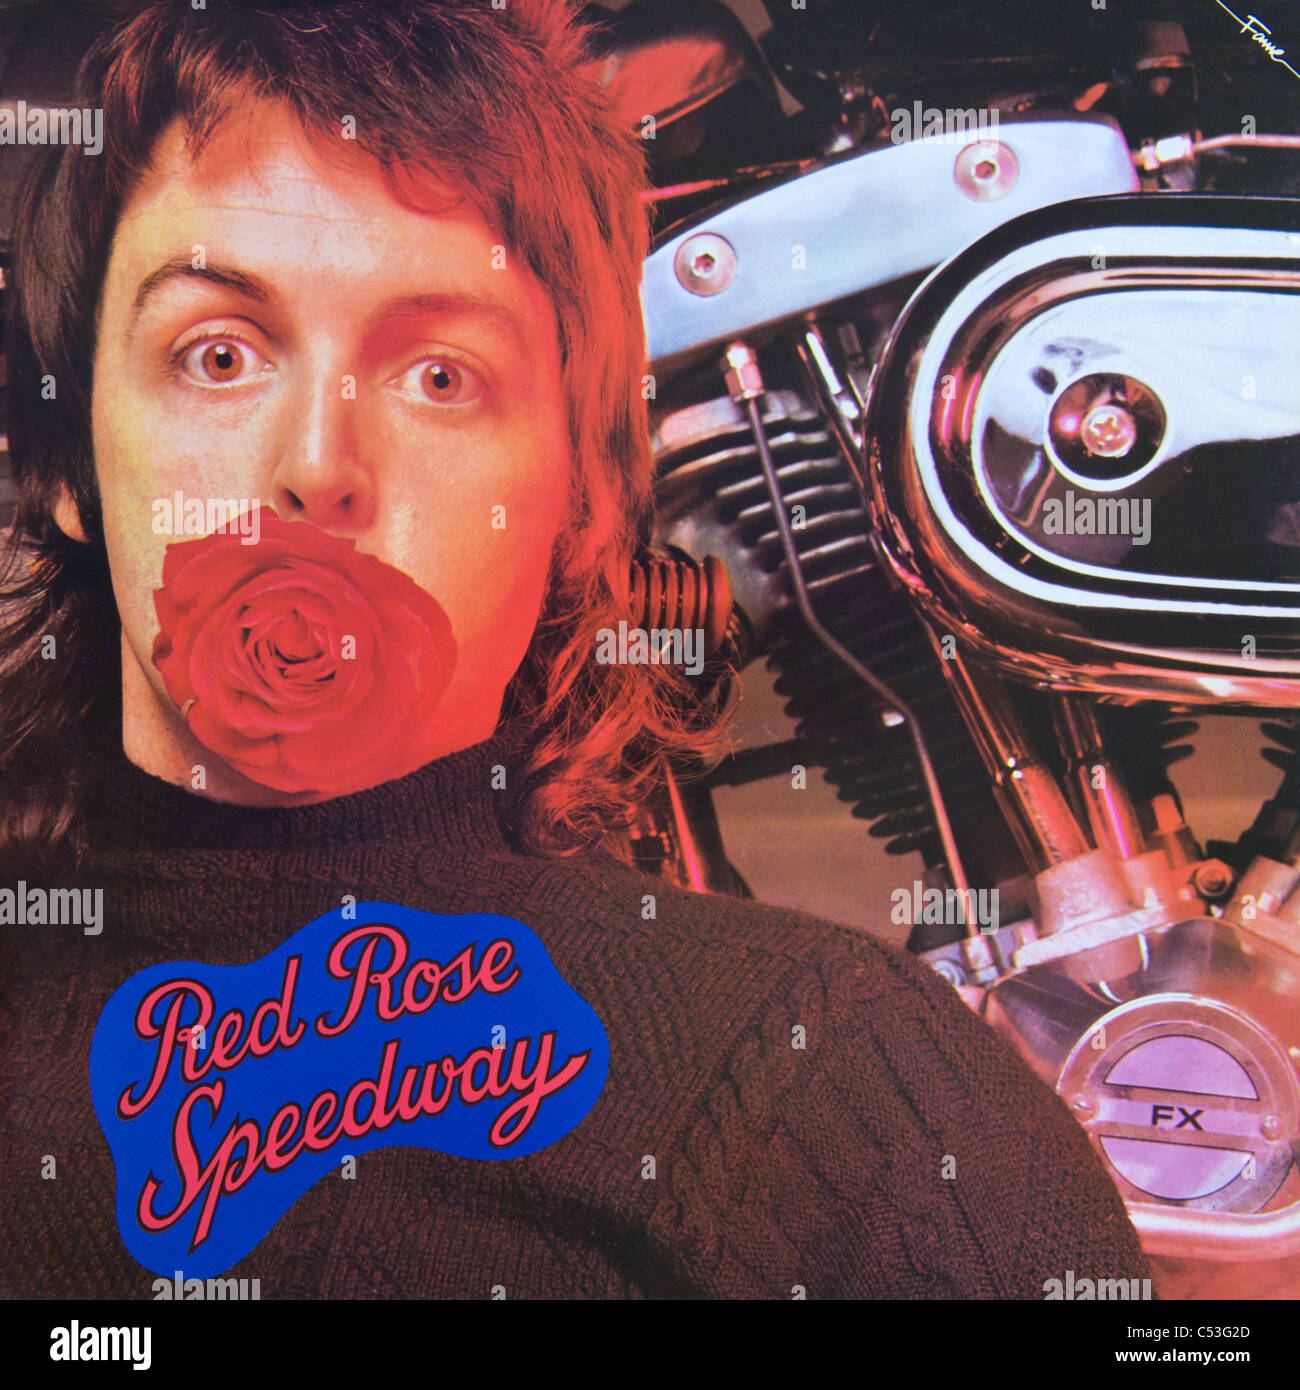 Cover Of Original Vinyl Album Red Rose Speedway By Paul McCartney And Wings Released 1973 On Fame Records